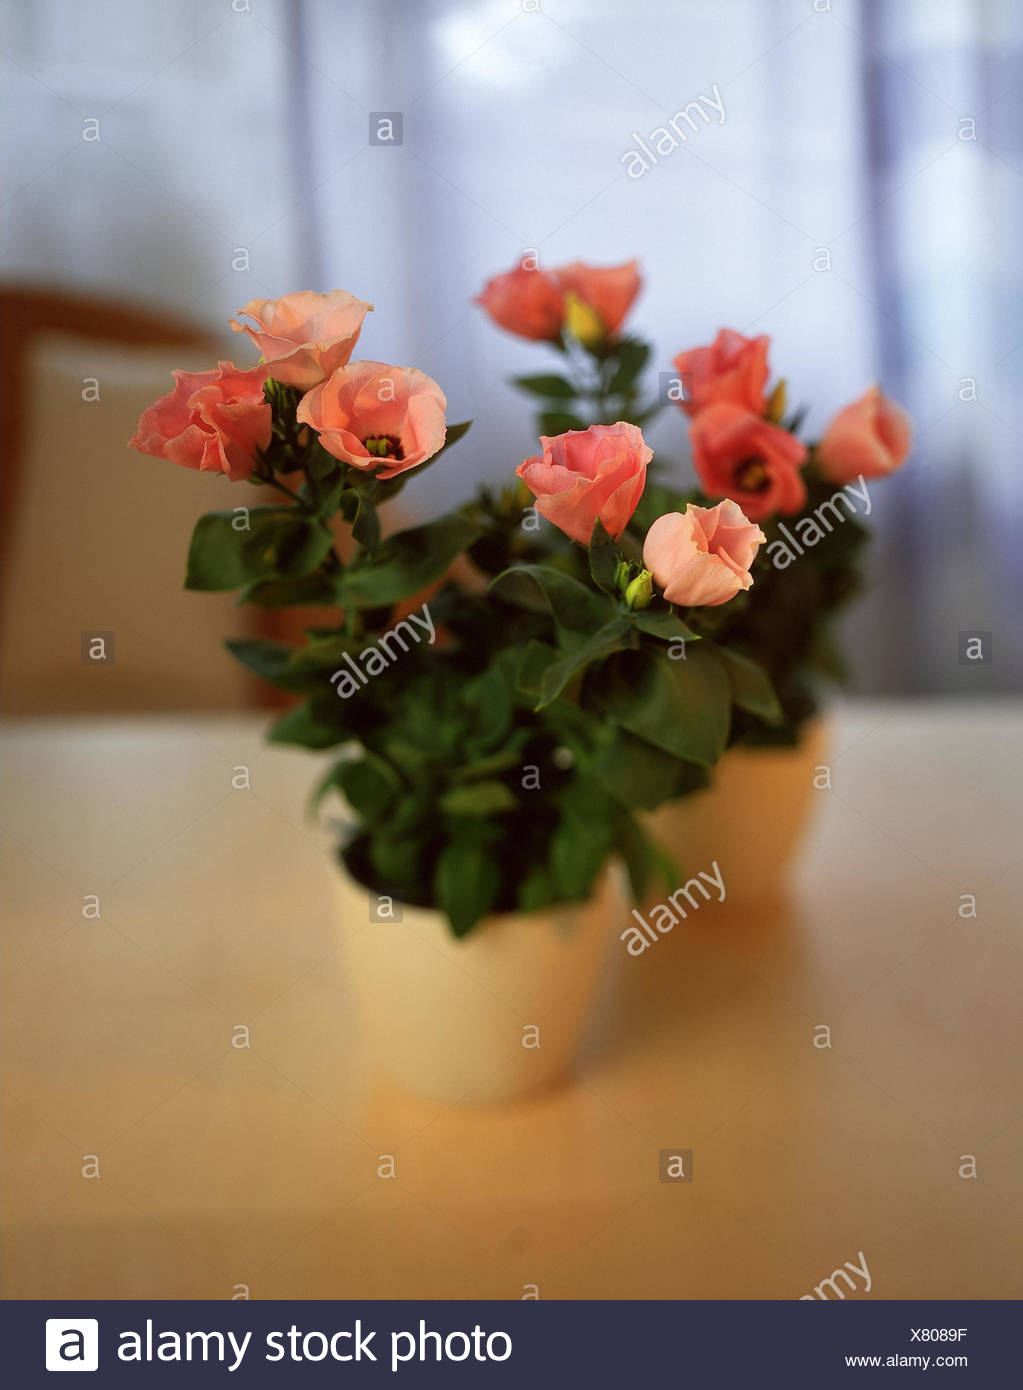 Eustoma grandiflorum, syn. Lisianthus russelianus, 'Rose Bell' potted plant, blossoms, pink, potted flower, nice cup, Gentianaceae, gentian plants - Stock Image